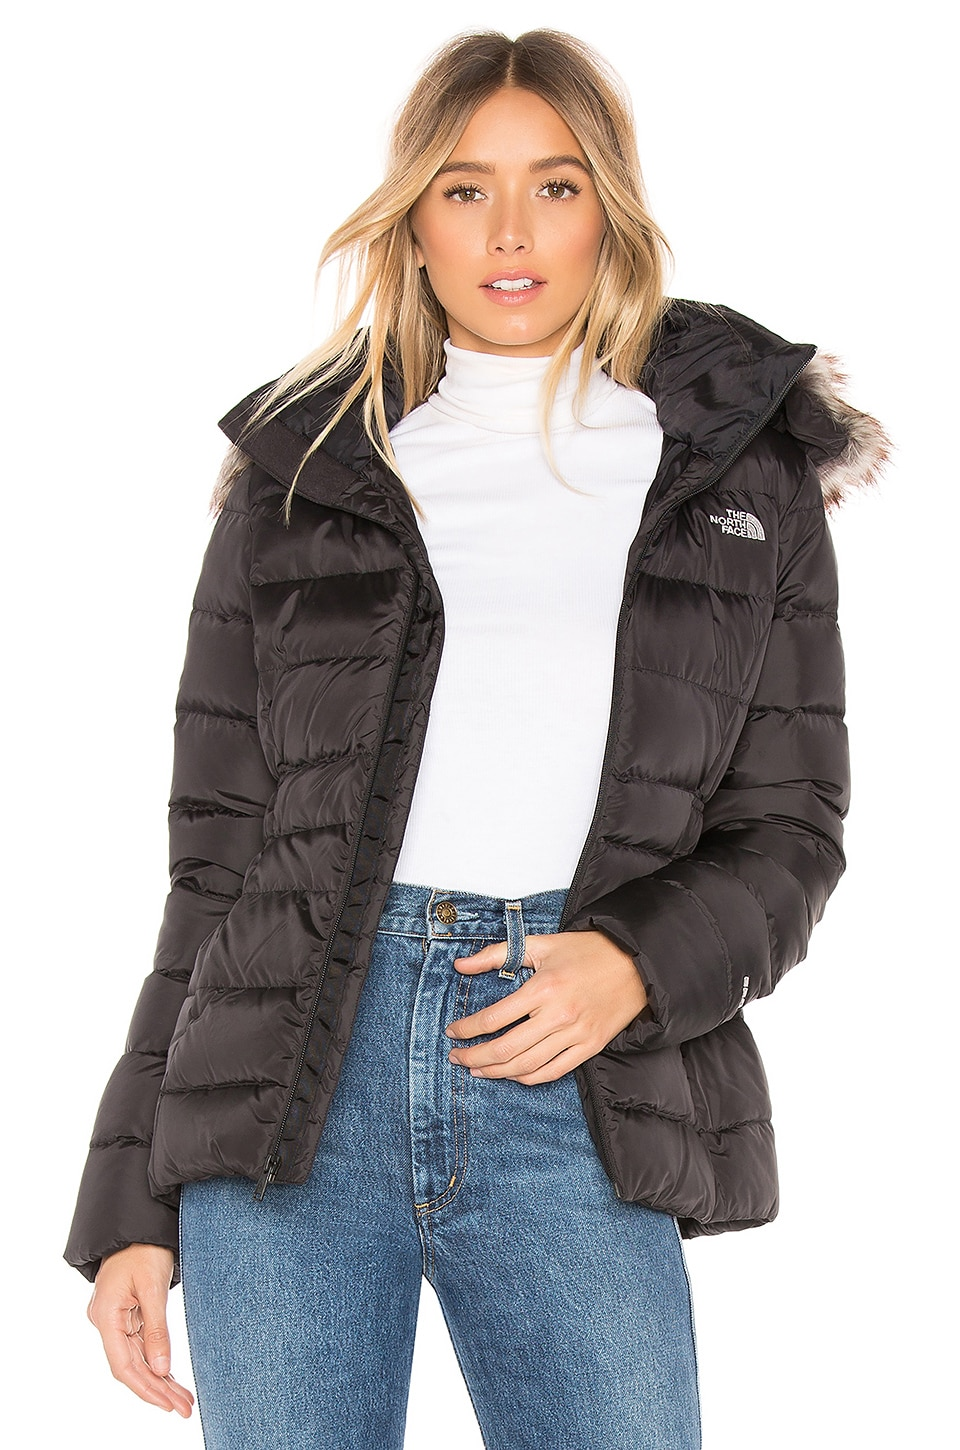 ac1f31e47 The North Face Gotham Jacket II With Faux Fur Trim in TNF Black ...